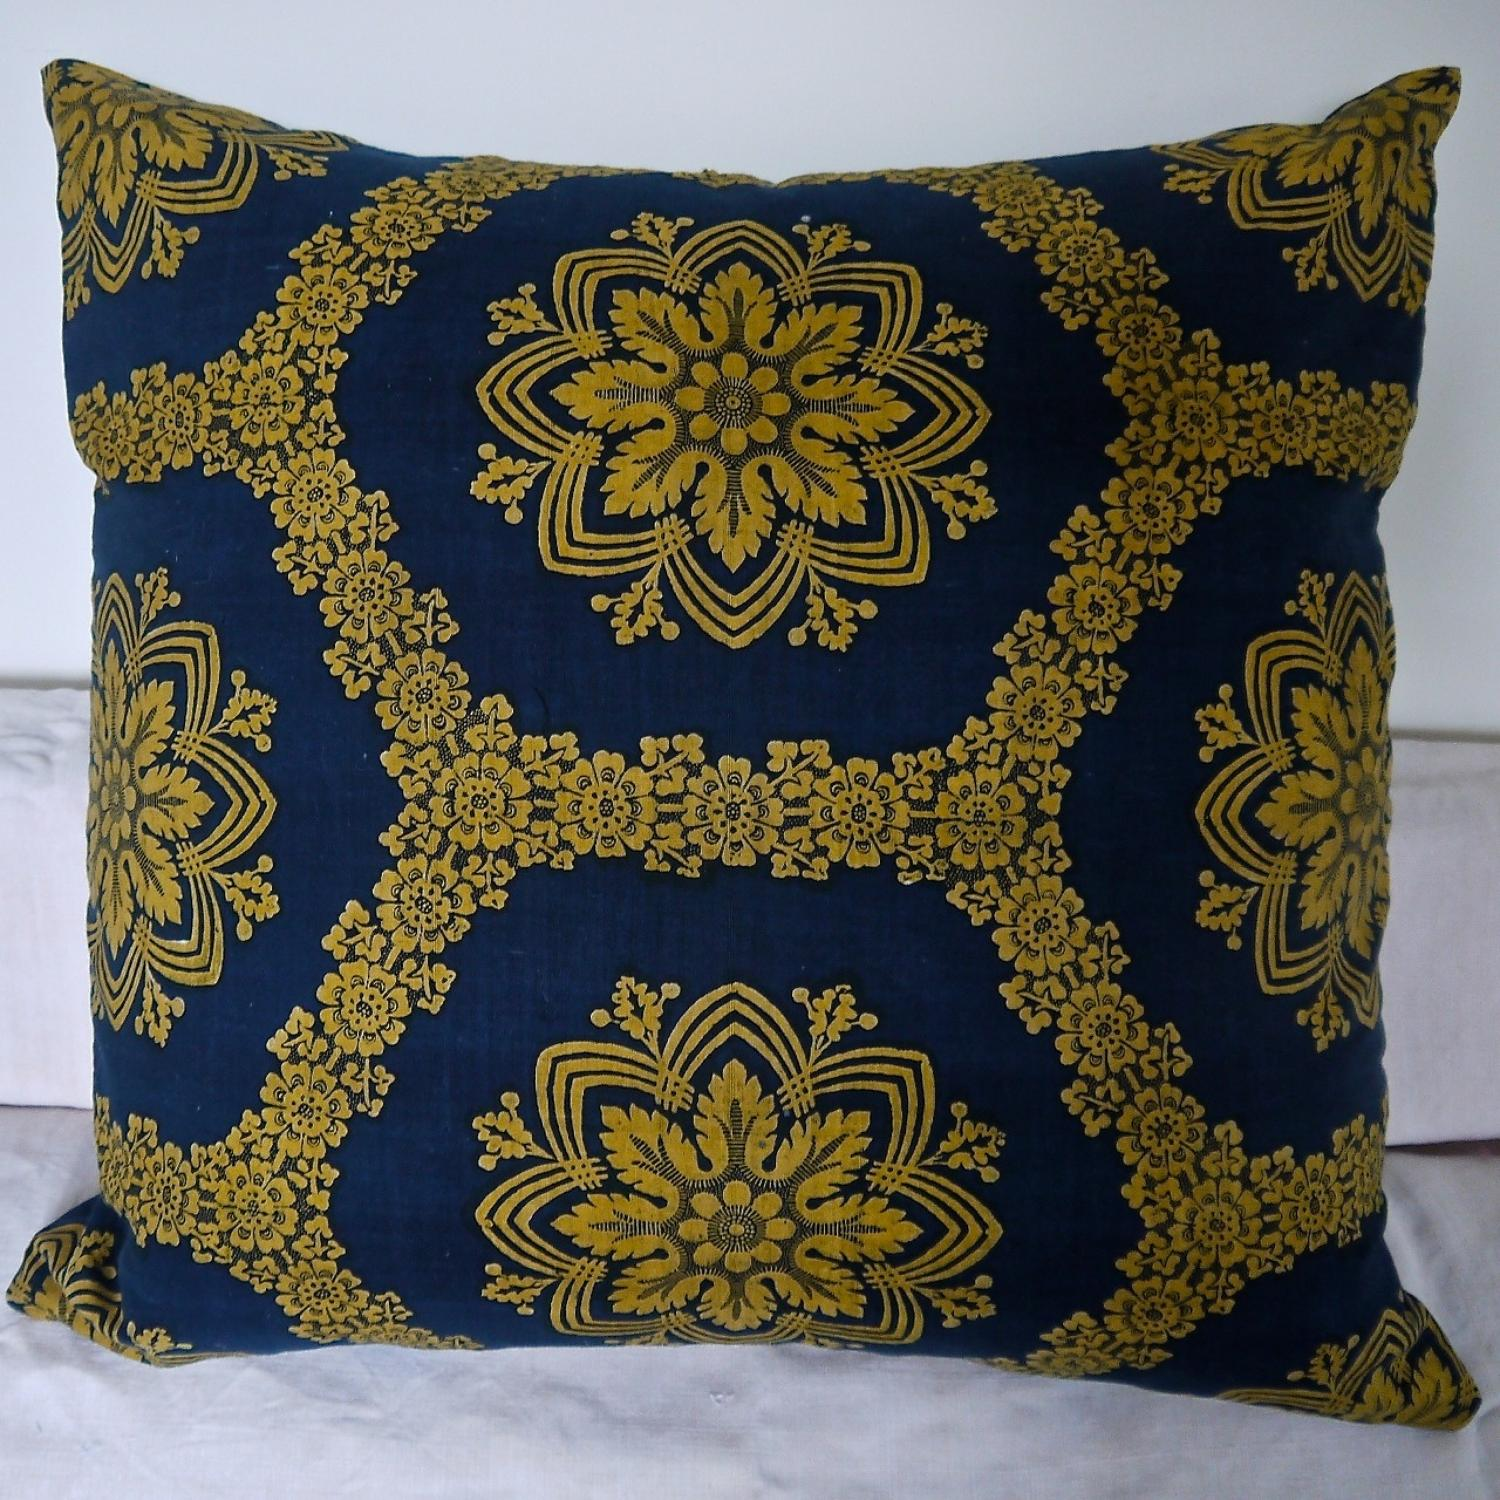 19th Century French Empire Indigo and Saffron Cushion